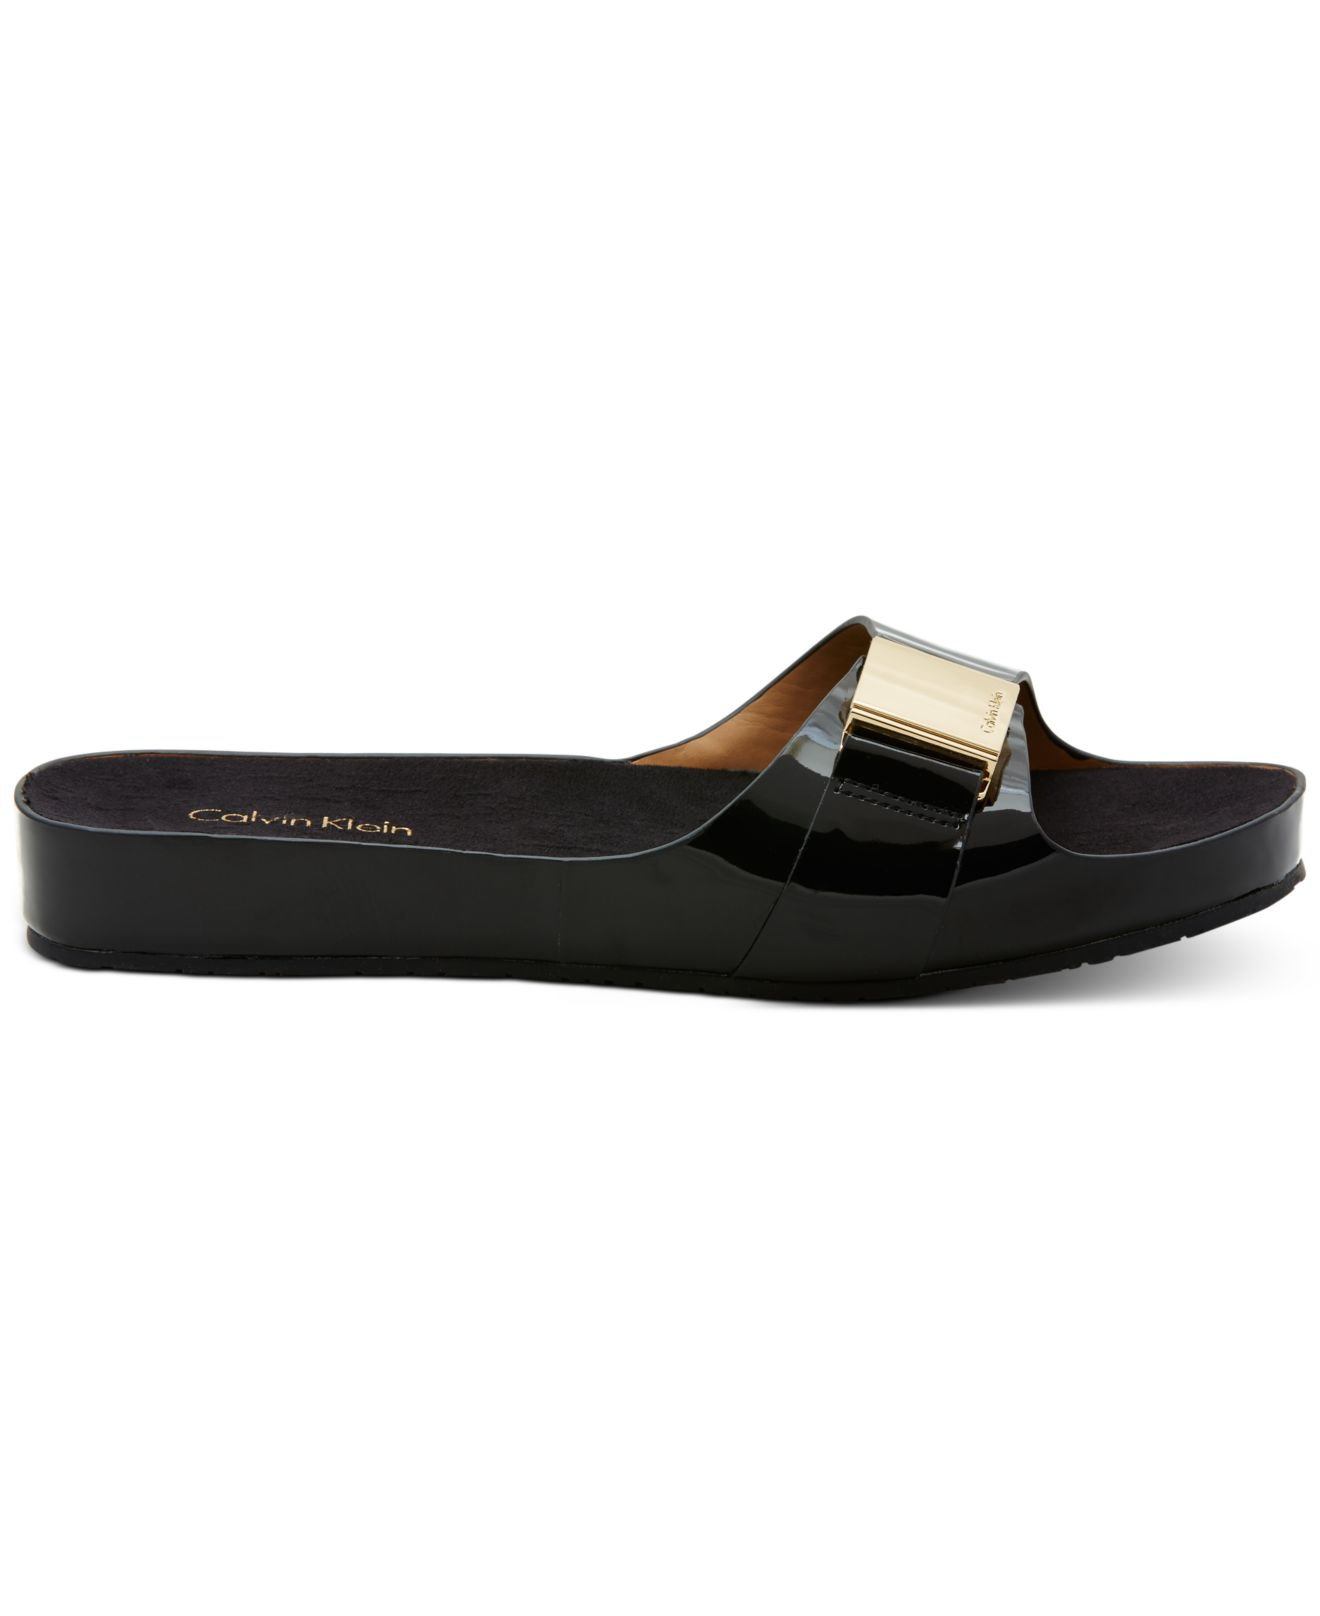 7131b61facaffe calvin klein black sandals calvin klein s marlie sandals in black lyst